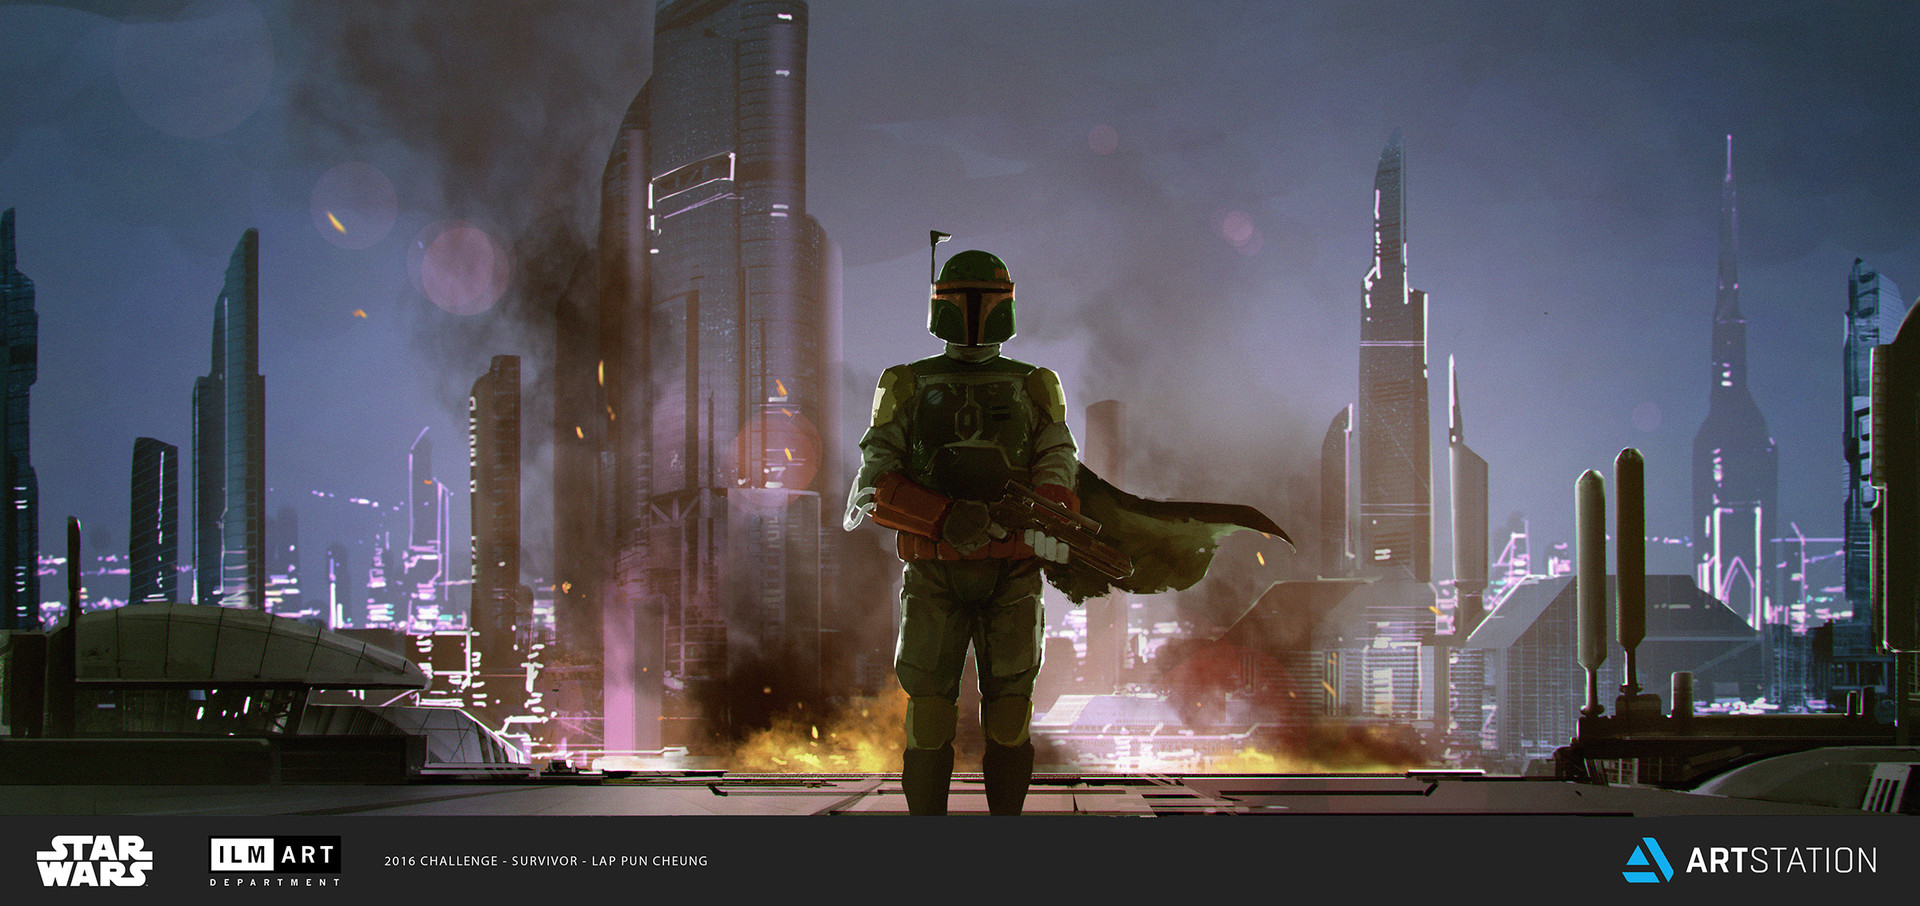 Lap pun cheung the moment keyframe burning coruscant v2 online